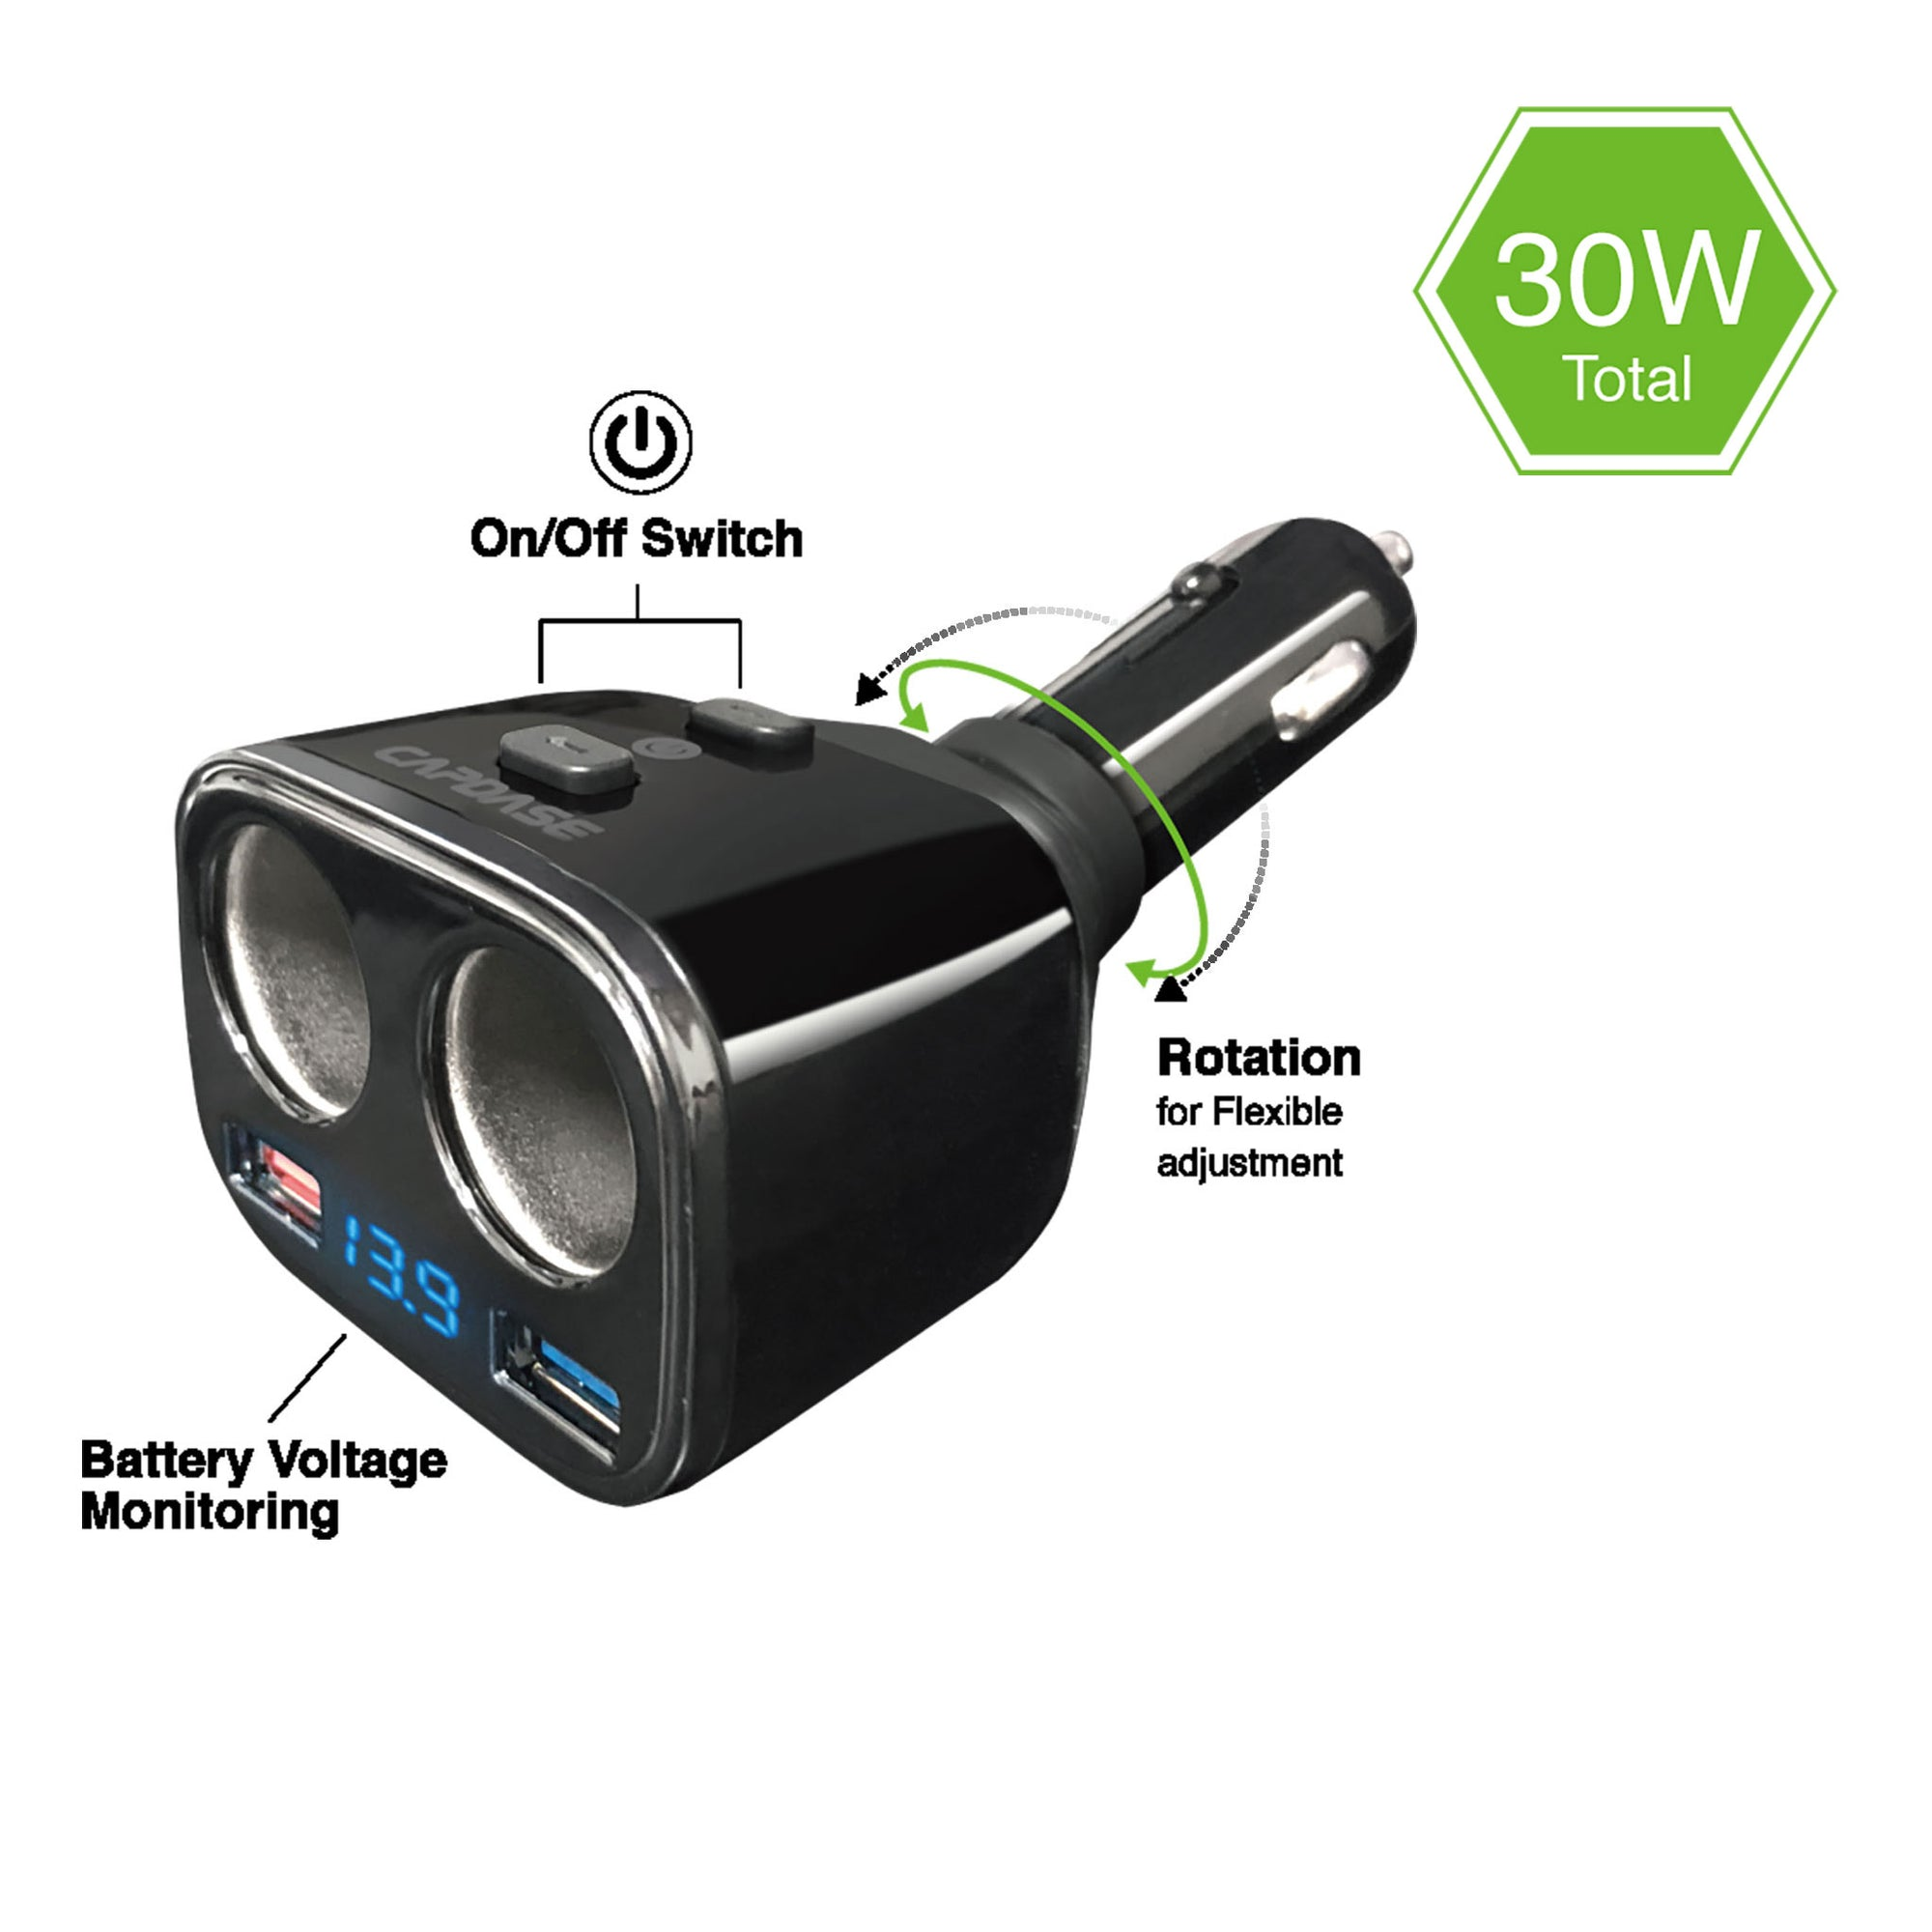 POWERHUB BM30 2-Socket and 2-USB QC 3.0 Car Charger